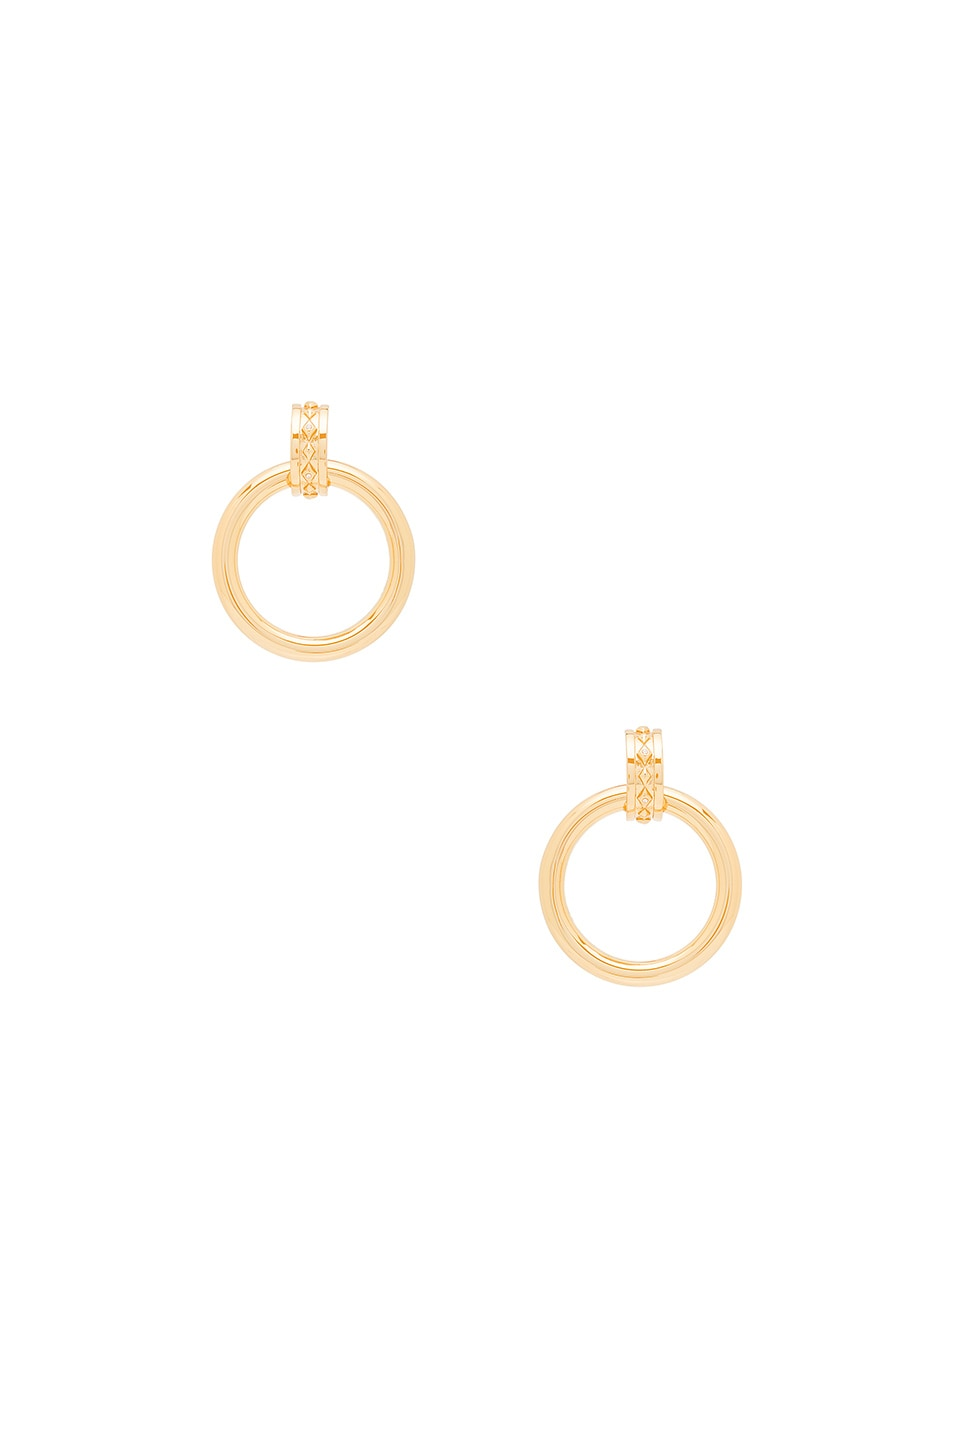 Luv AJ Evil Eye Statement Hoop Earrings in Antique Gold